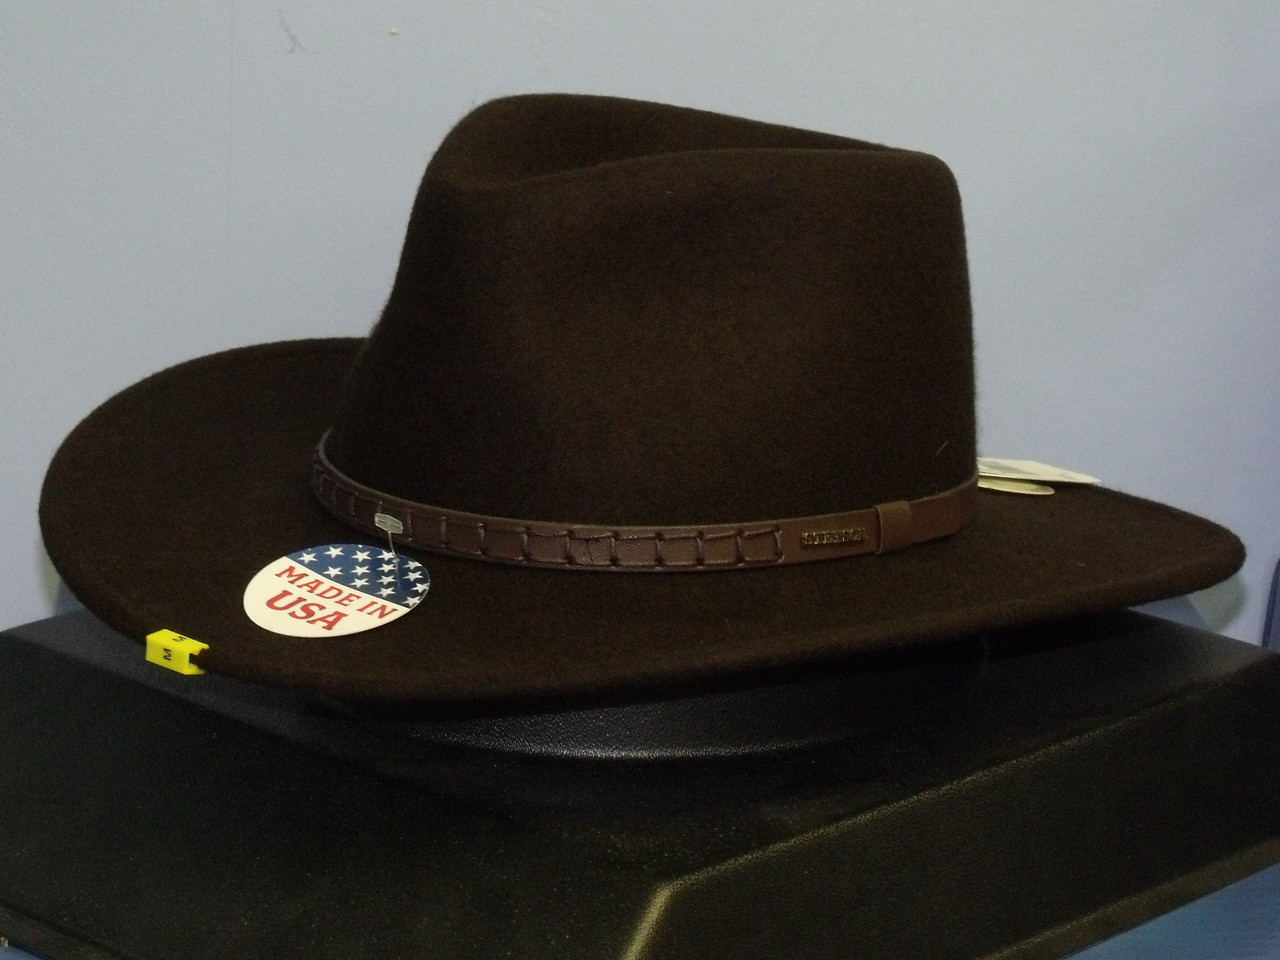 eca84843fe5 Stetson Sturgis Crushable Wool Western Hat - One 2 mini Ranch